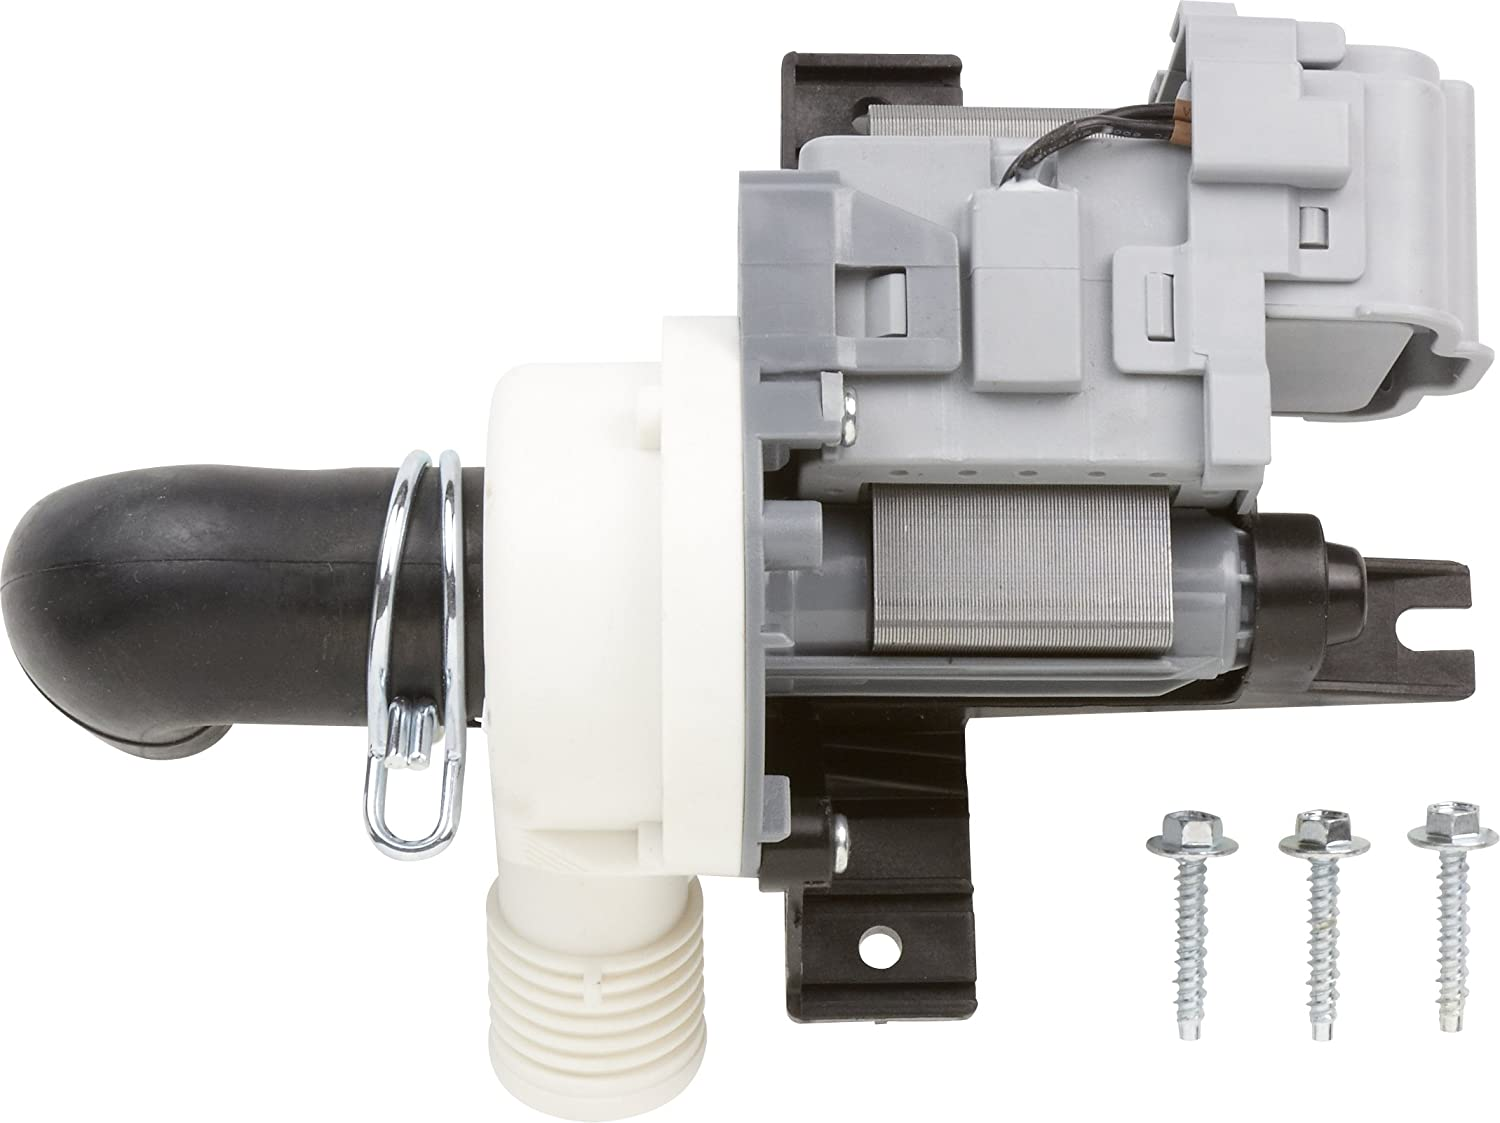 Whirlpool W10536347 Pump Drain Parts Diagram List For Model Wed9600tw0 Whirlpoolparts Dryer